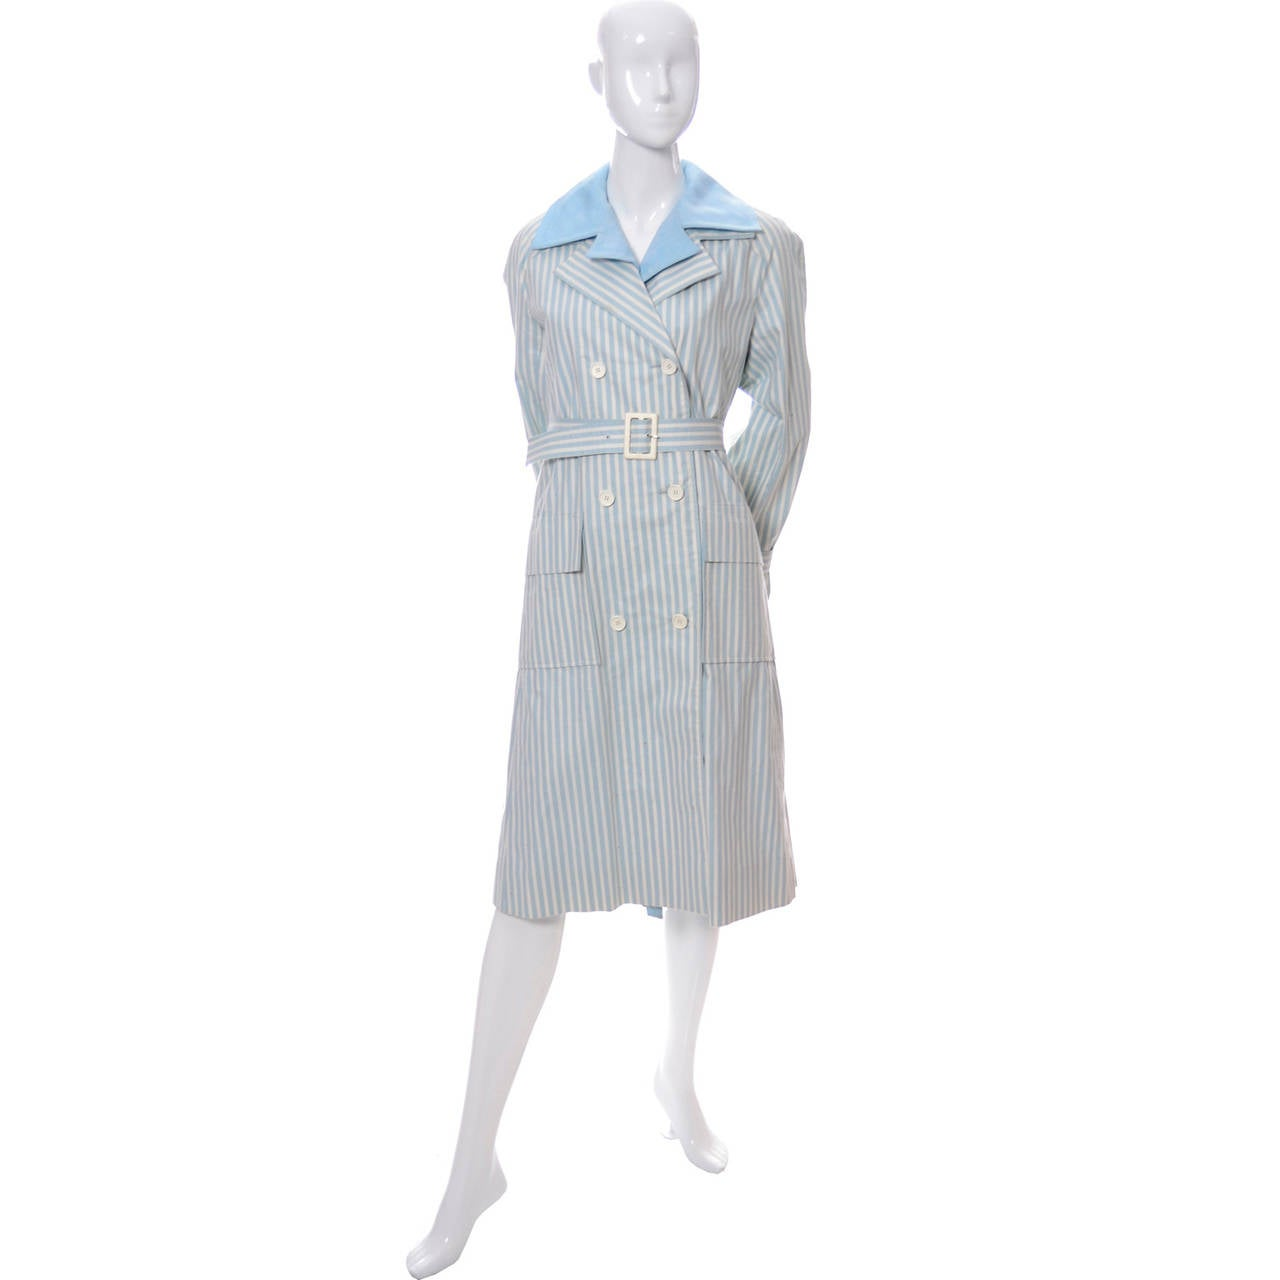 Givenchy Nouvelle Boutique 1970s Blue Vintage Dress and Striped Coat Outfit 4